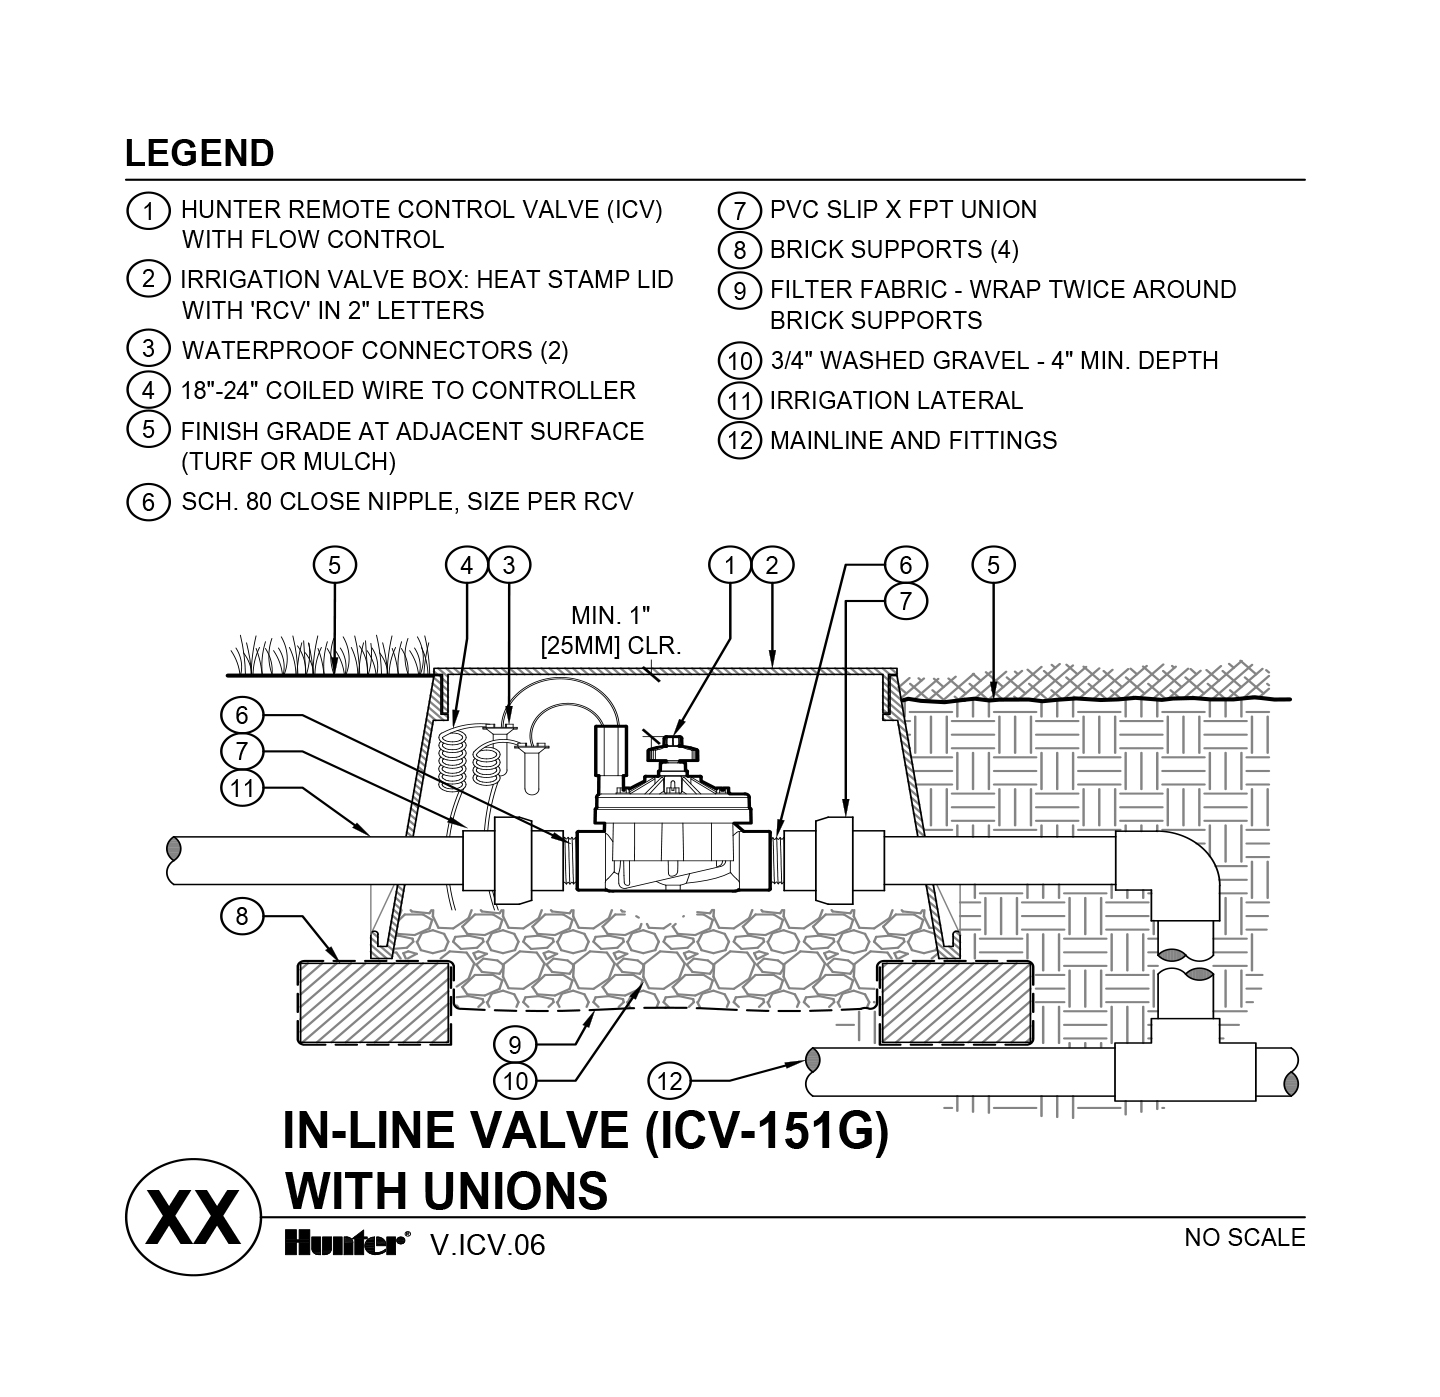 CAD - ICV-151G with unions